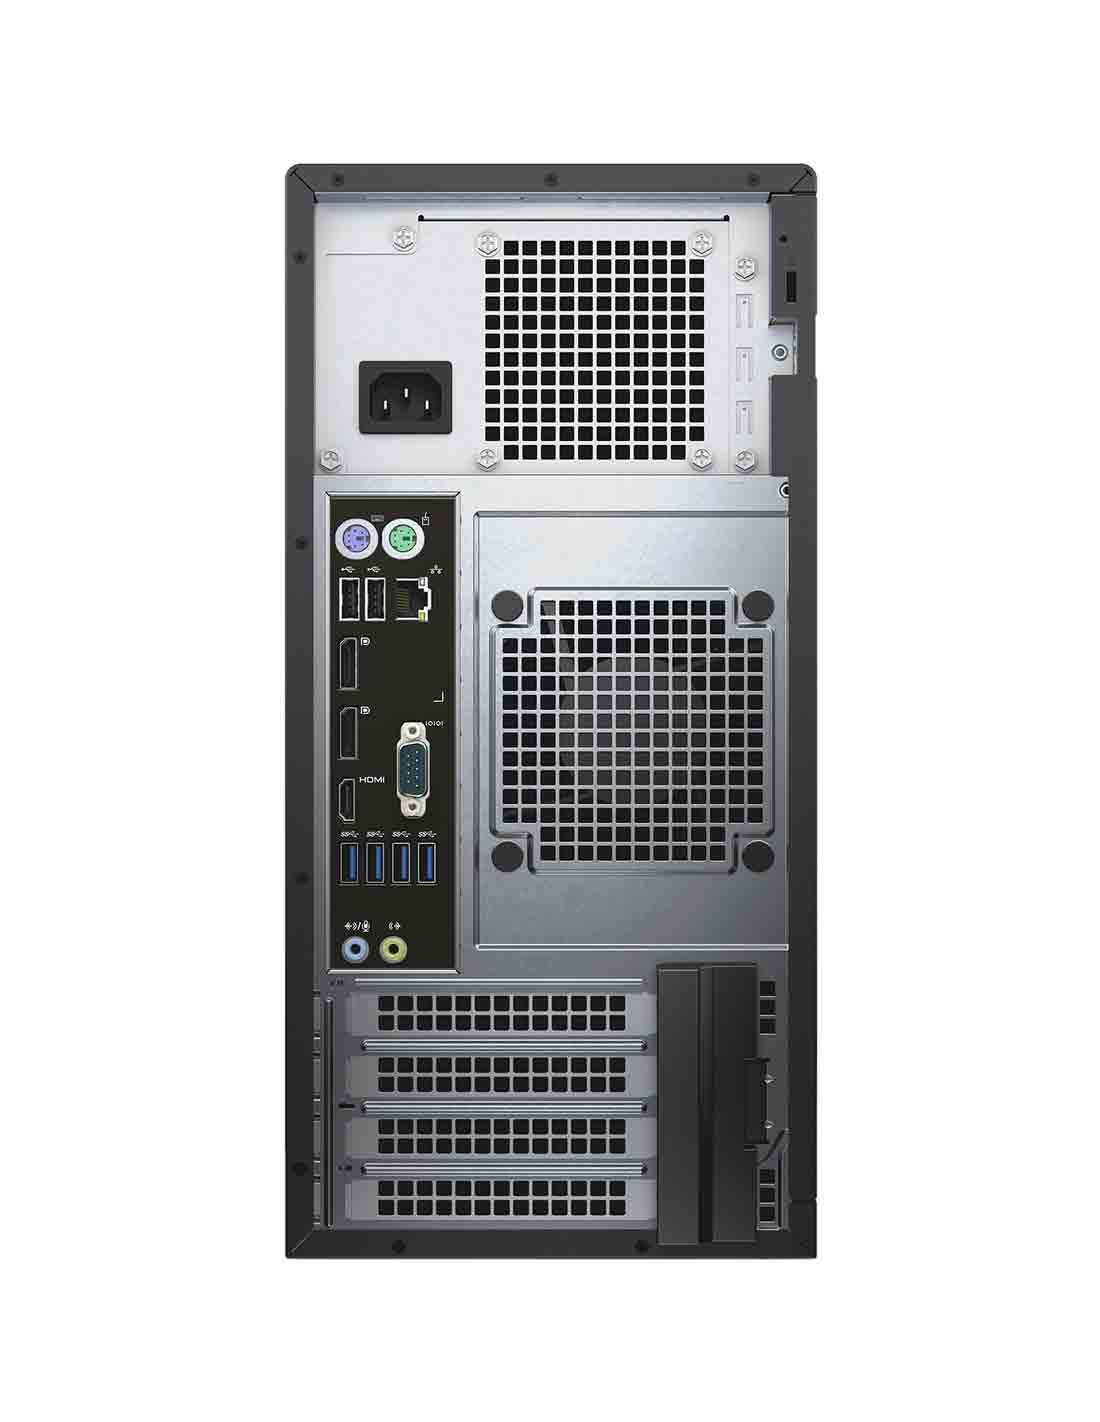 Dell Precision Tower 3620 E3-1270 v5 images and photos in Dubai online shop